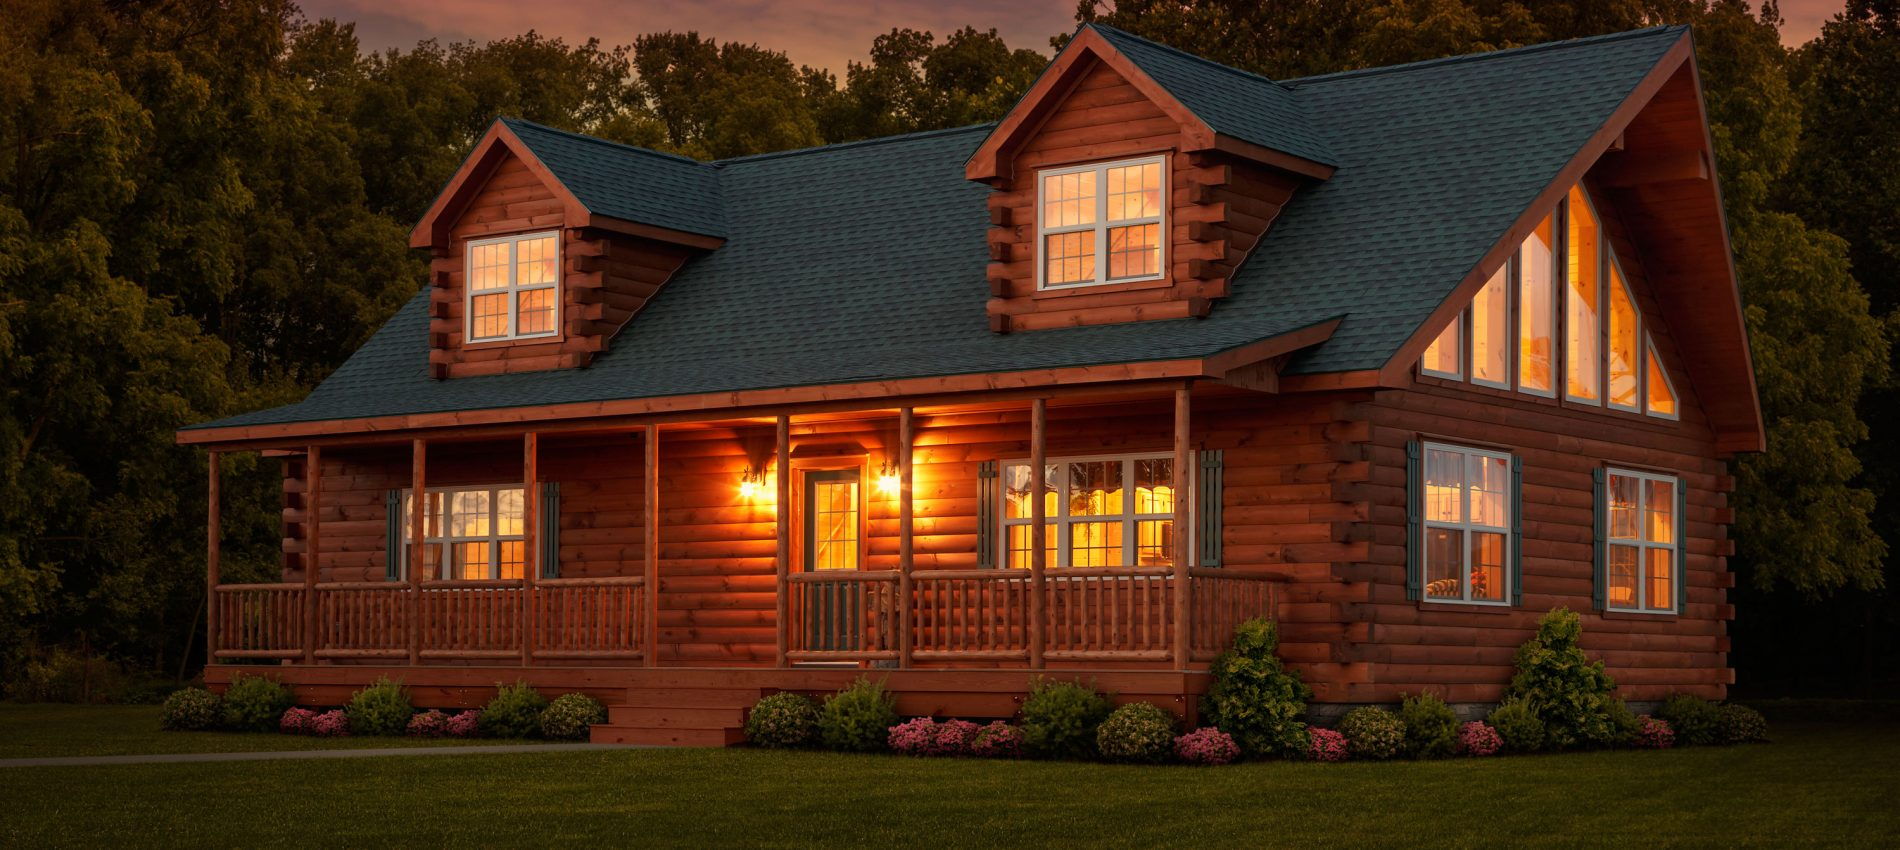 Strange Log Cabins For Sale Log Cabin Homes Log Houses Zook Cabins Download Free Architecture Designs Remcamadebymaigaardcom